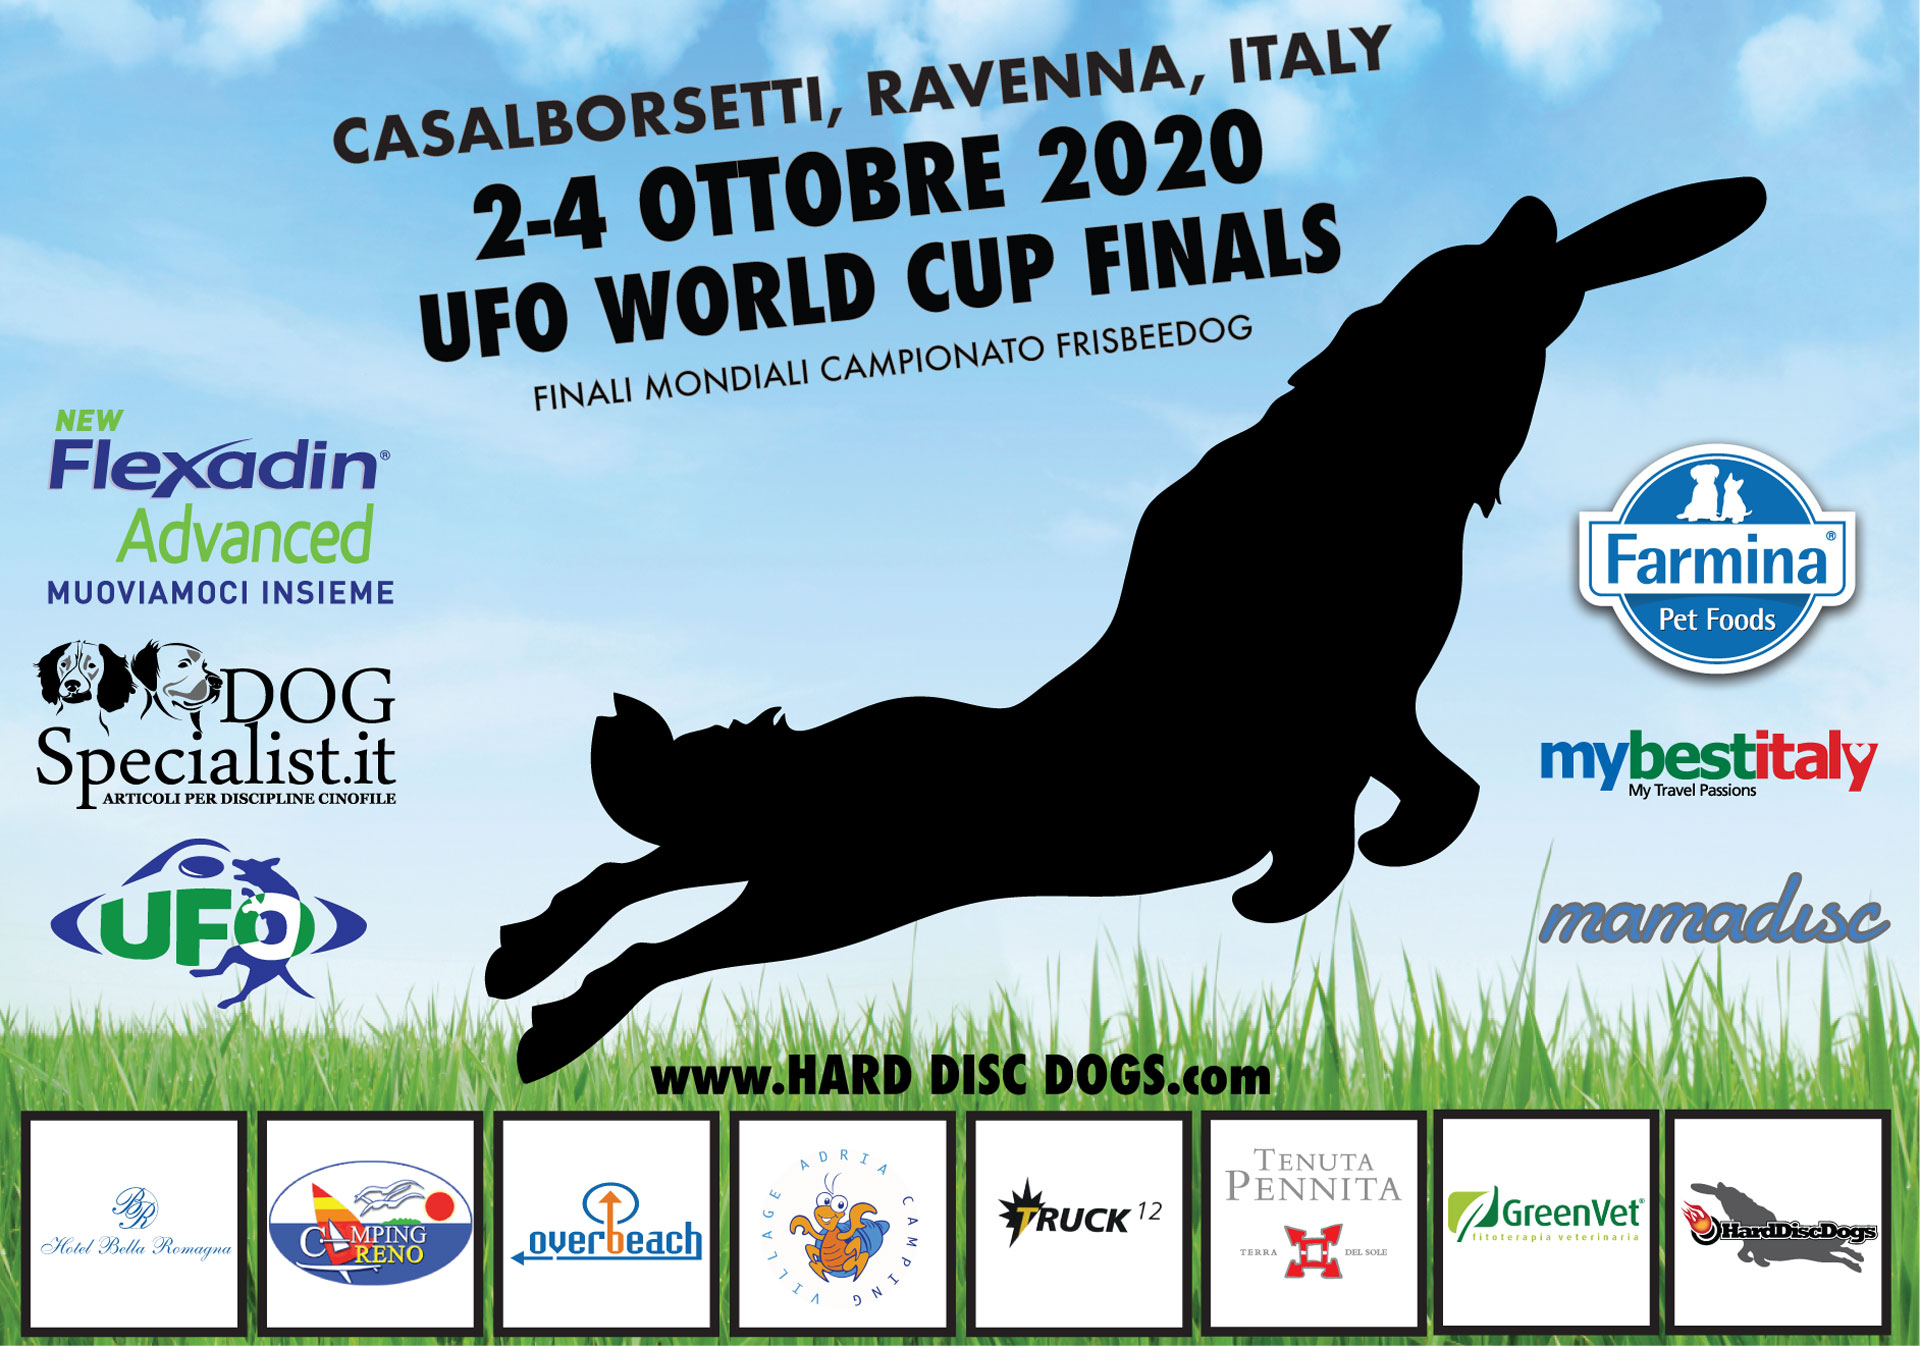 UFO World CUP Finals to Italy